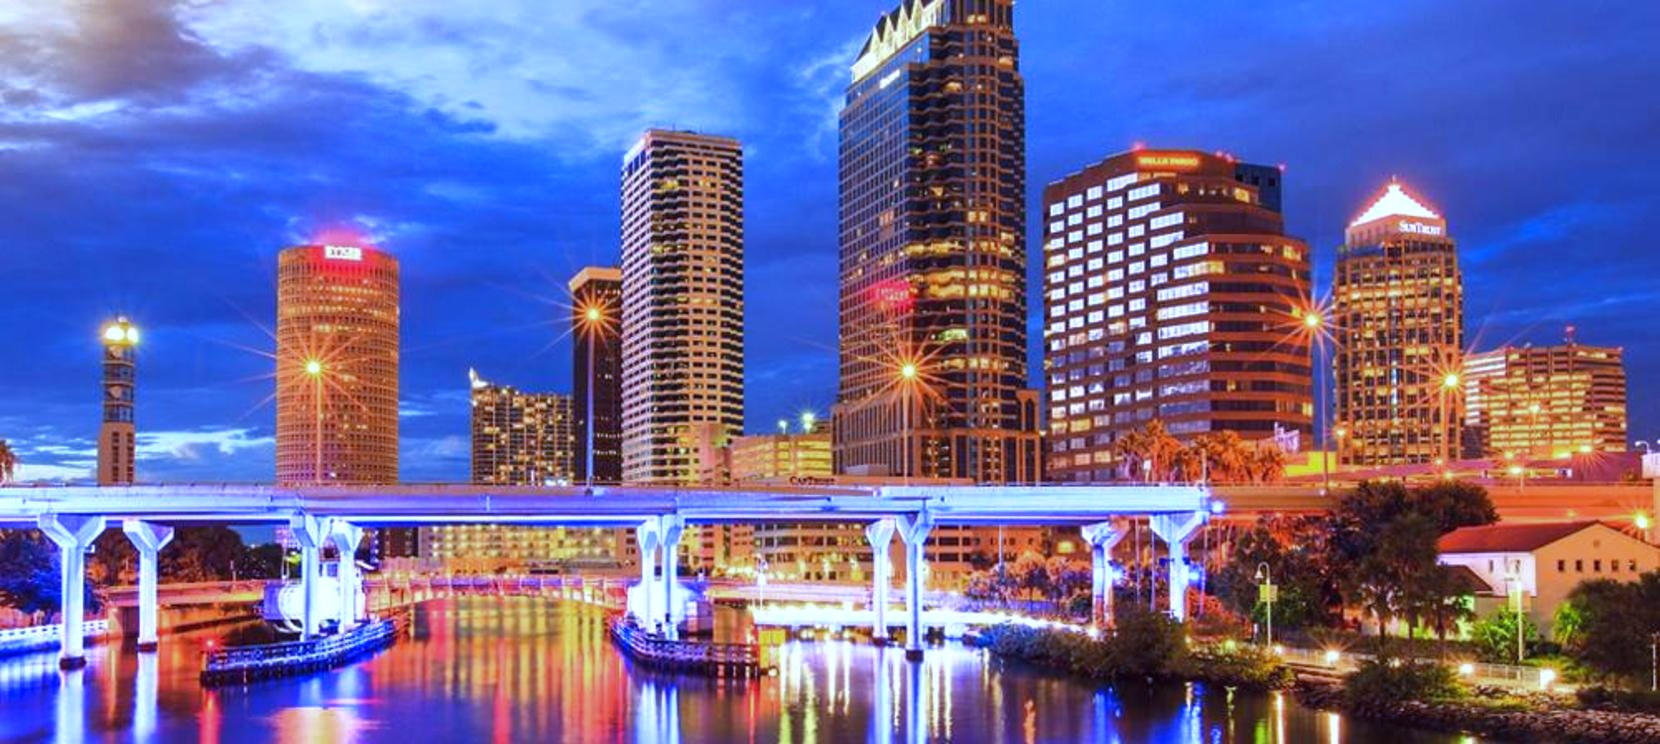 downtown-tampa_edited.jpg